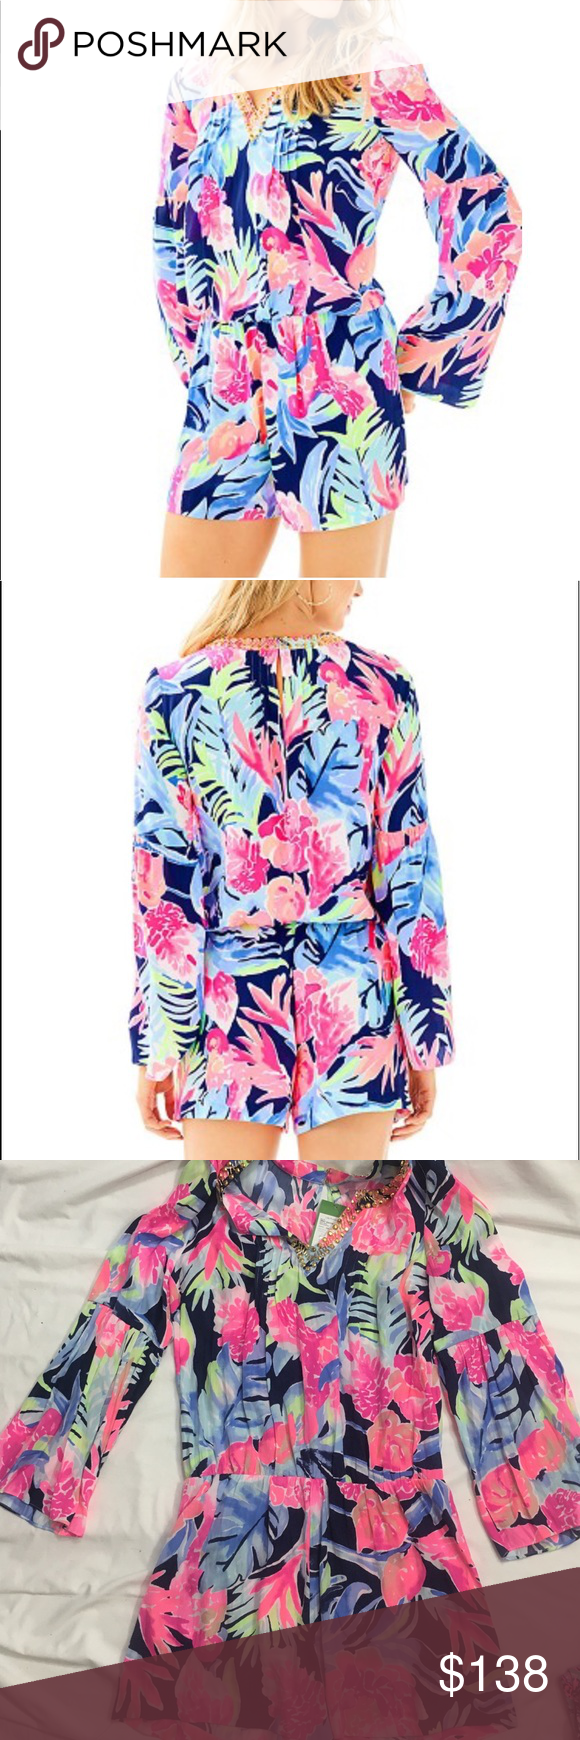 4cd59398be8f Lilly Pulitzer Arielle Romper Navy Tropicolada M Brand new with tags high  tide Navy Tropicolada Size Medium Retail  188 The Ariele printed romper is  a long ...